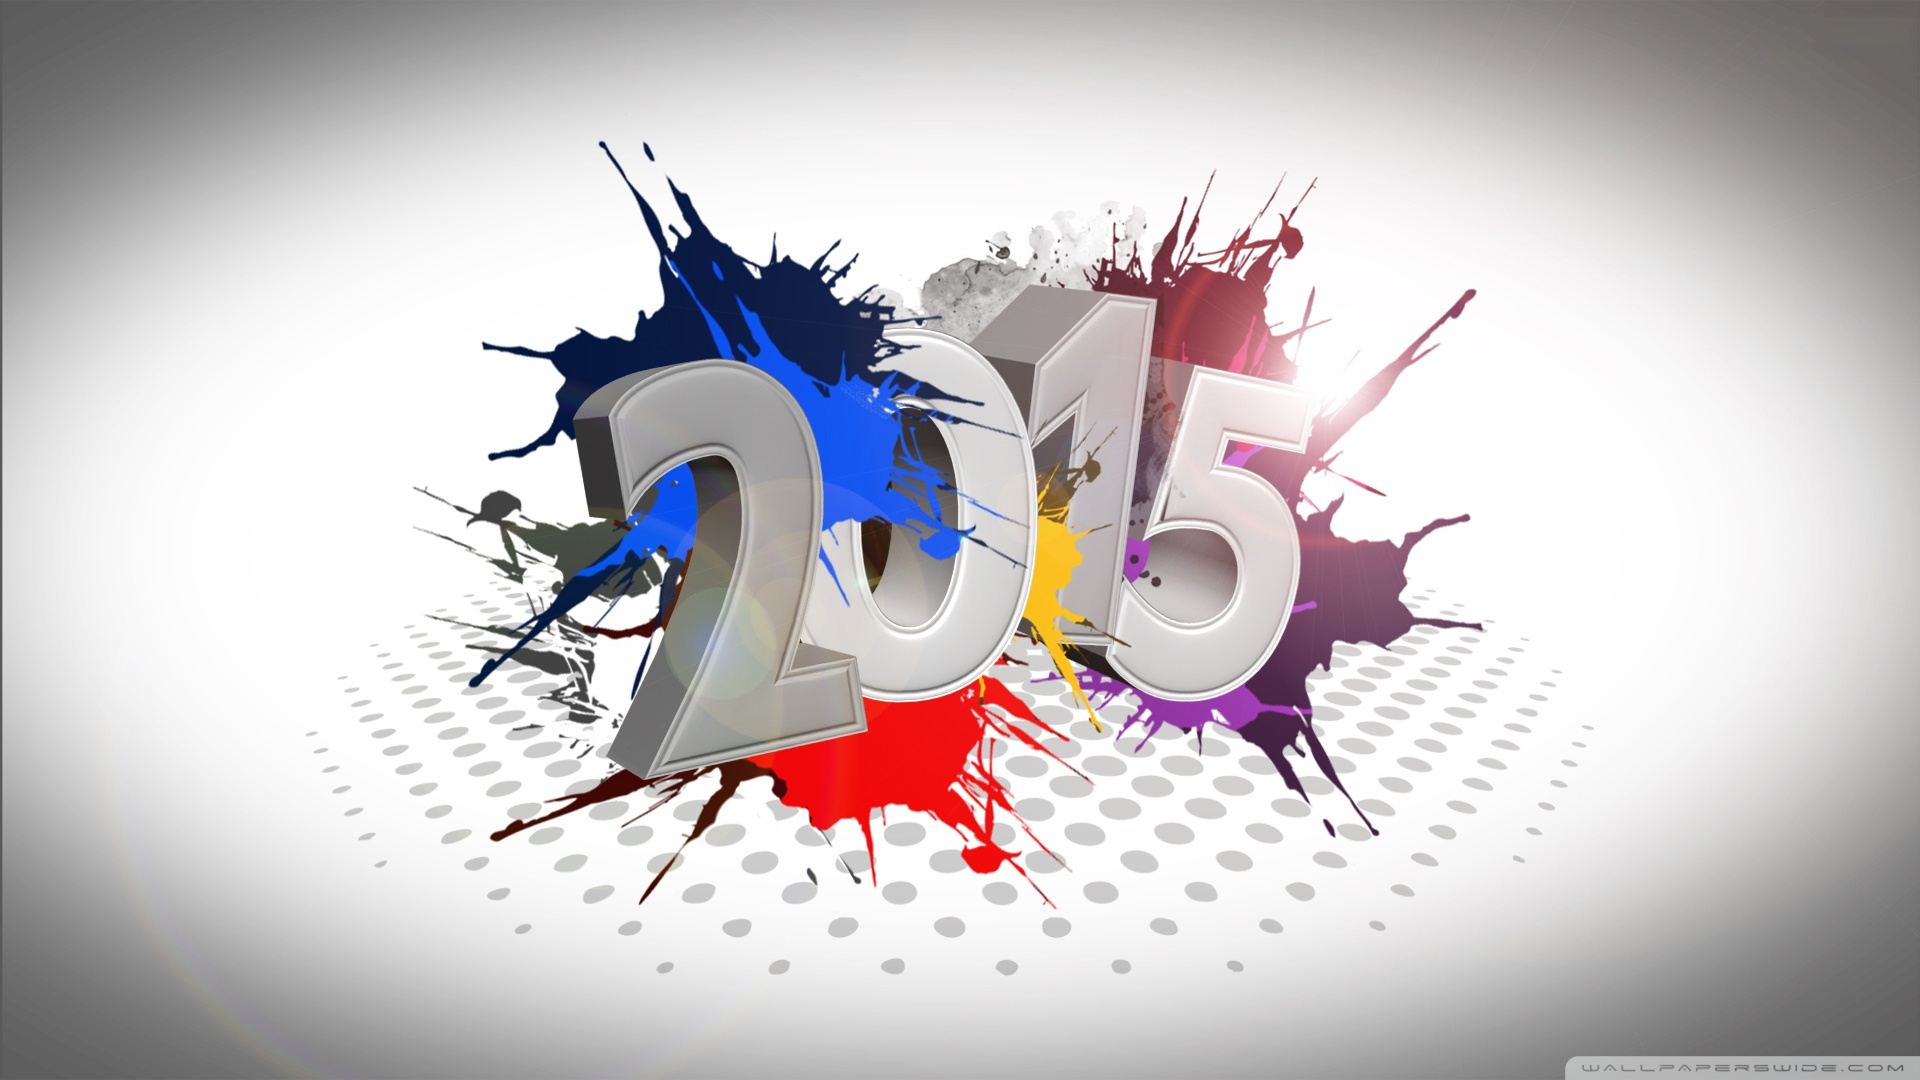 WallpapersWidecom New Year HD Desktop Wallpapers for 4K Ultra 1920x1080